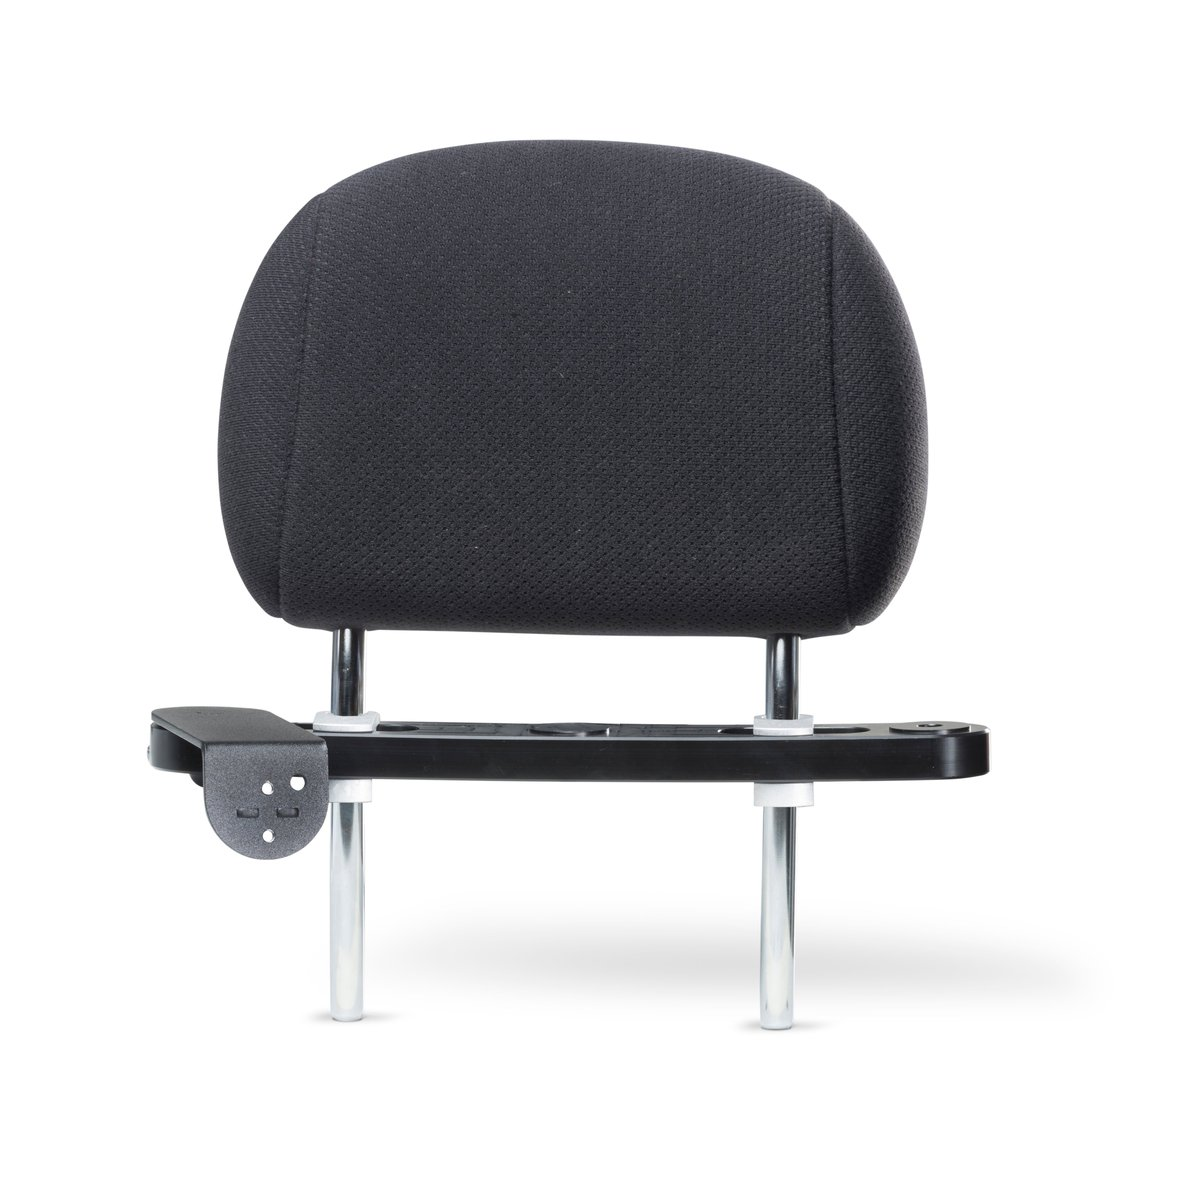 test Twitter Media - DID YOU KNOW @SpacePole_Inc has mounts for head rests in vehicles compatible with tablet and payment devices?  Visit https://t.co/Cl7VjmAk3q to learn more or email info@spacepole.com to learn more! #payment #tablets #mobilepos #transportation https://t.co/0EXJQ8KTgz